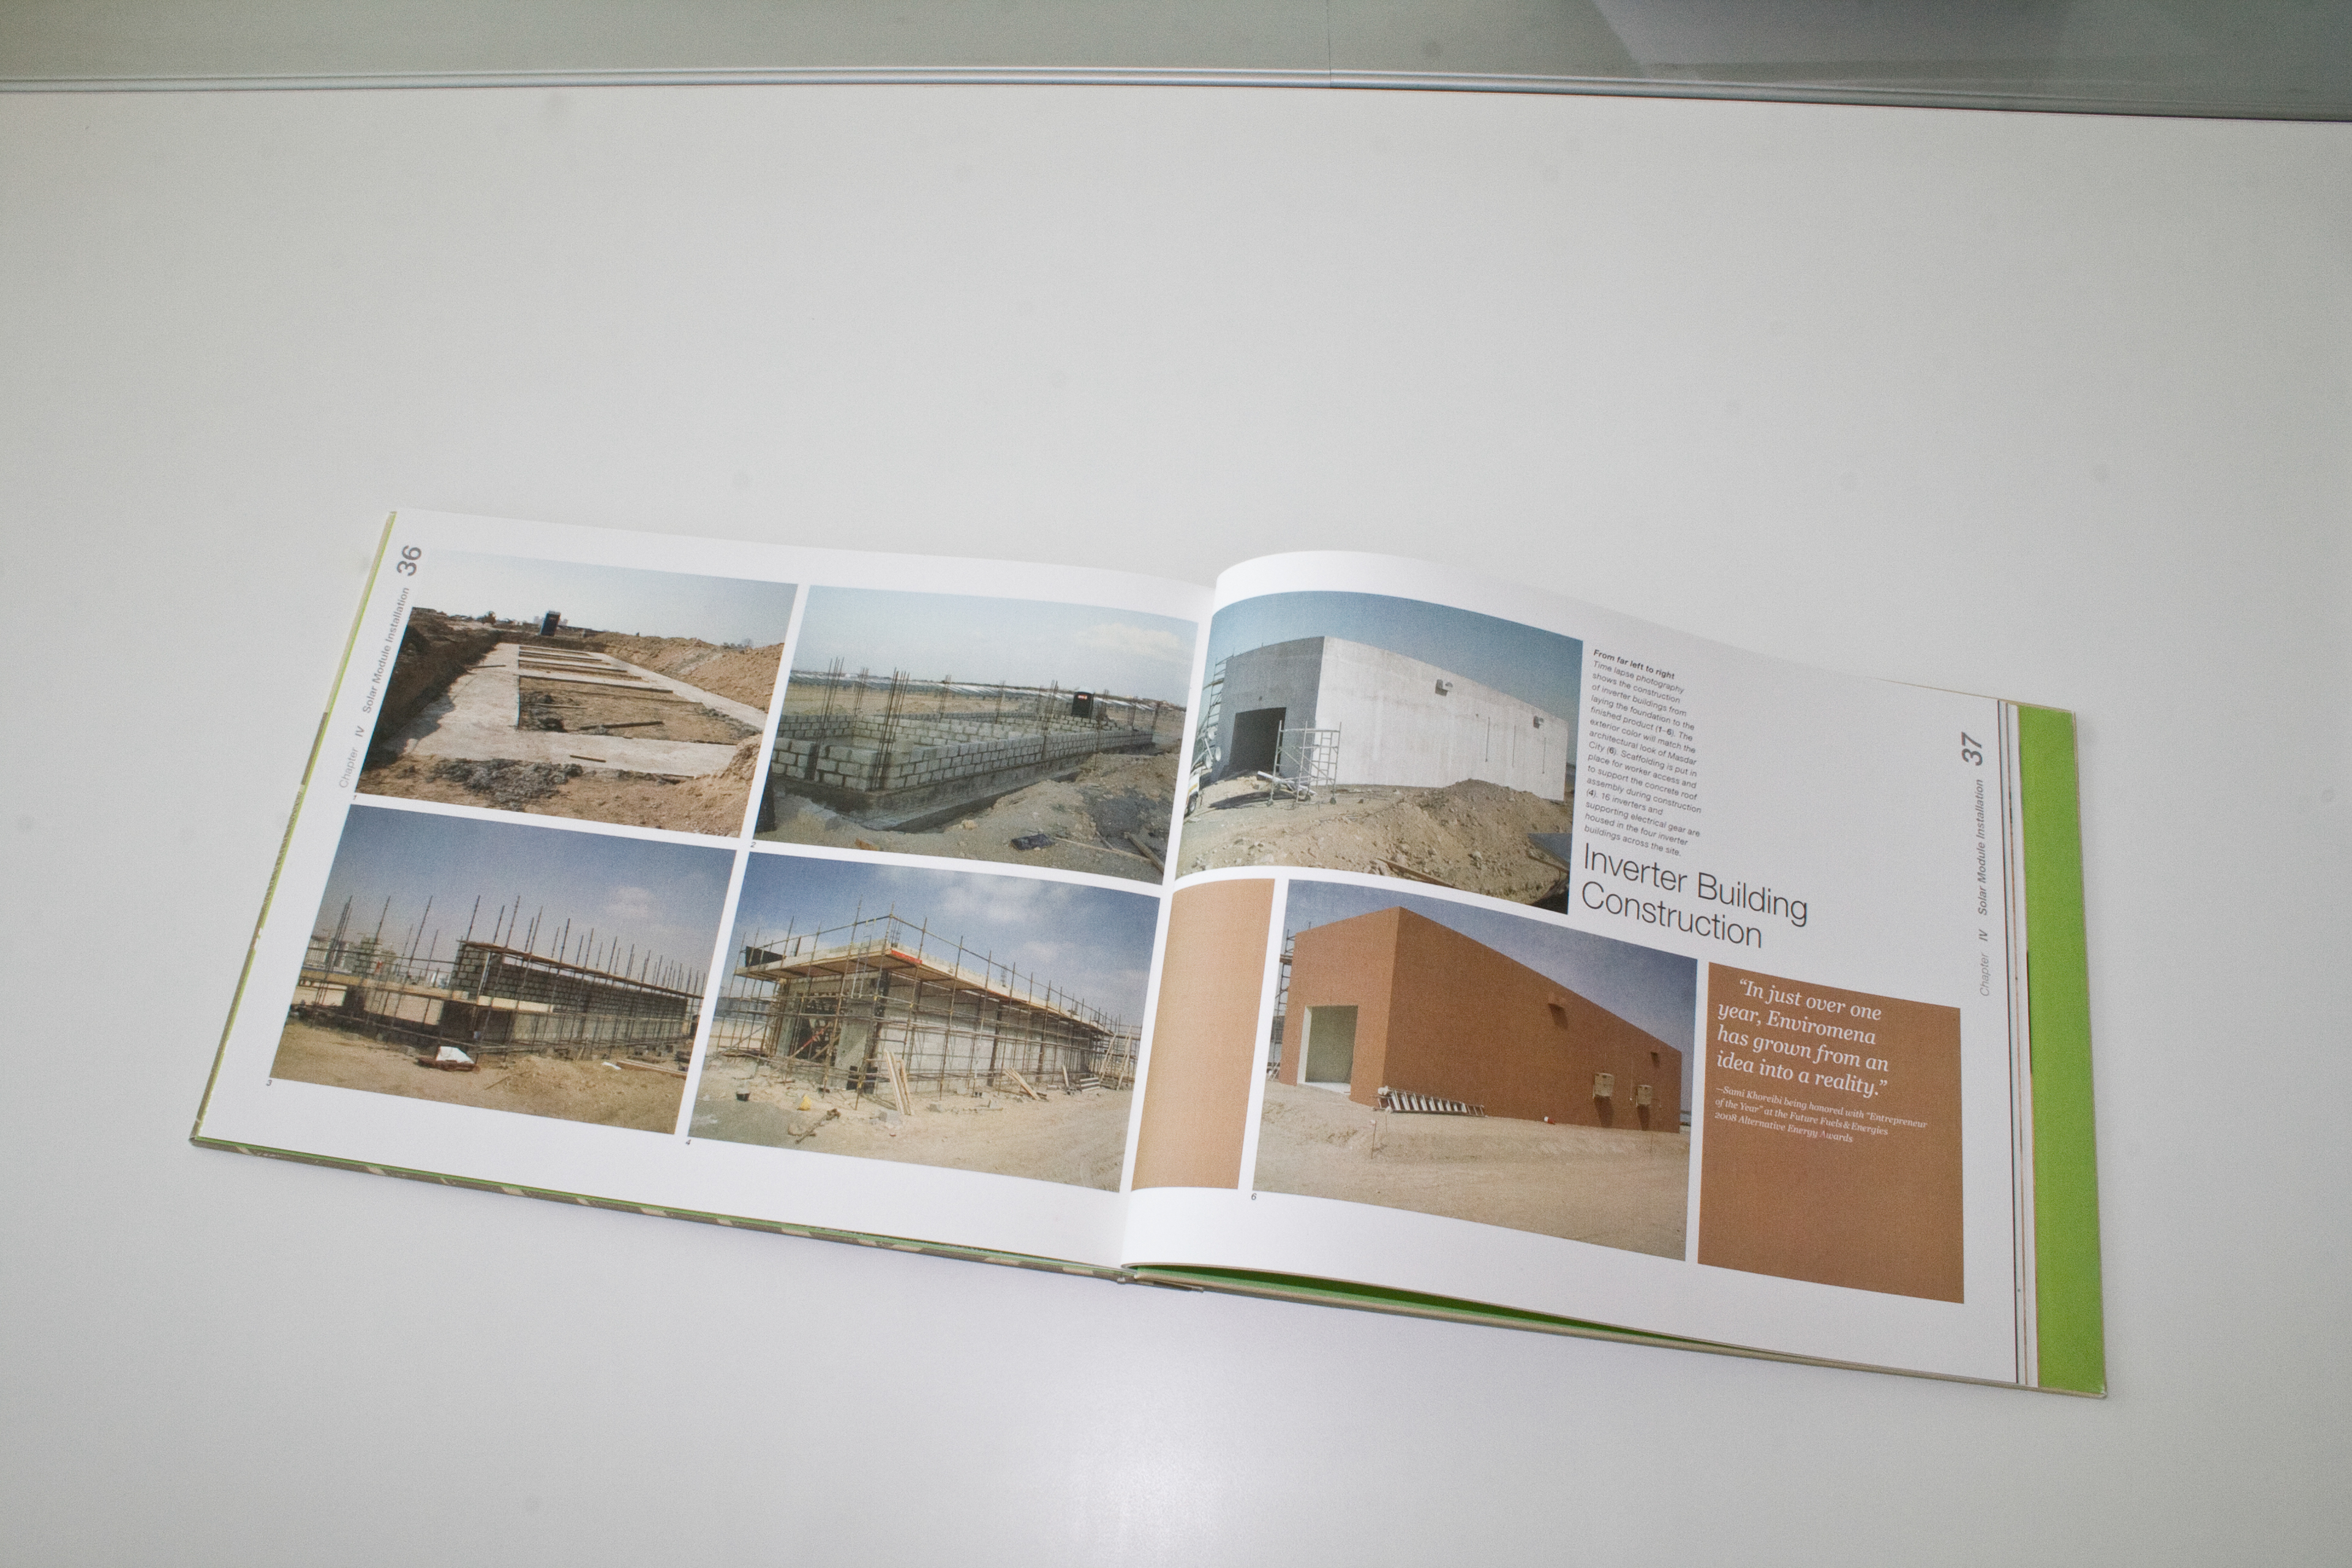 coffee table book in landscape format on behanceCoffee Table Book Layout Behance Residence In E Architect.jpg #5